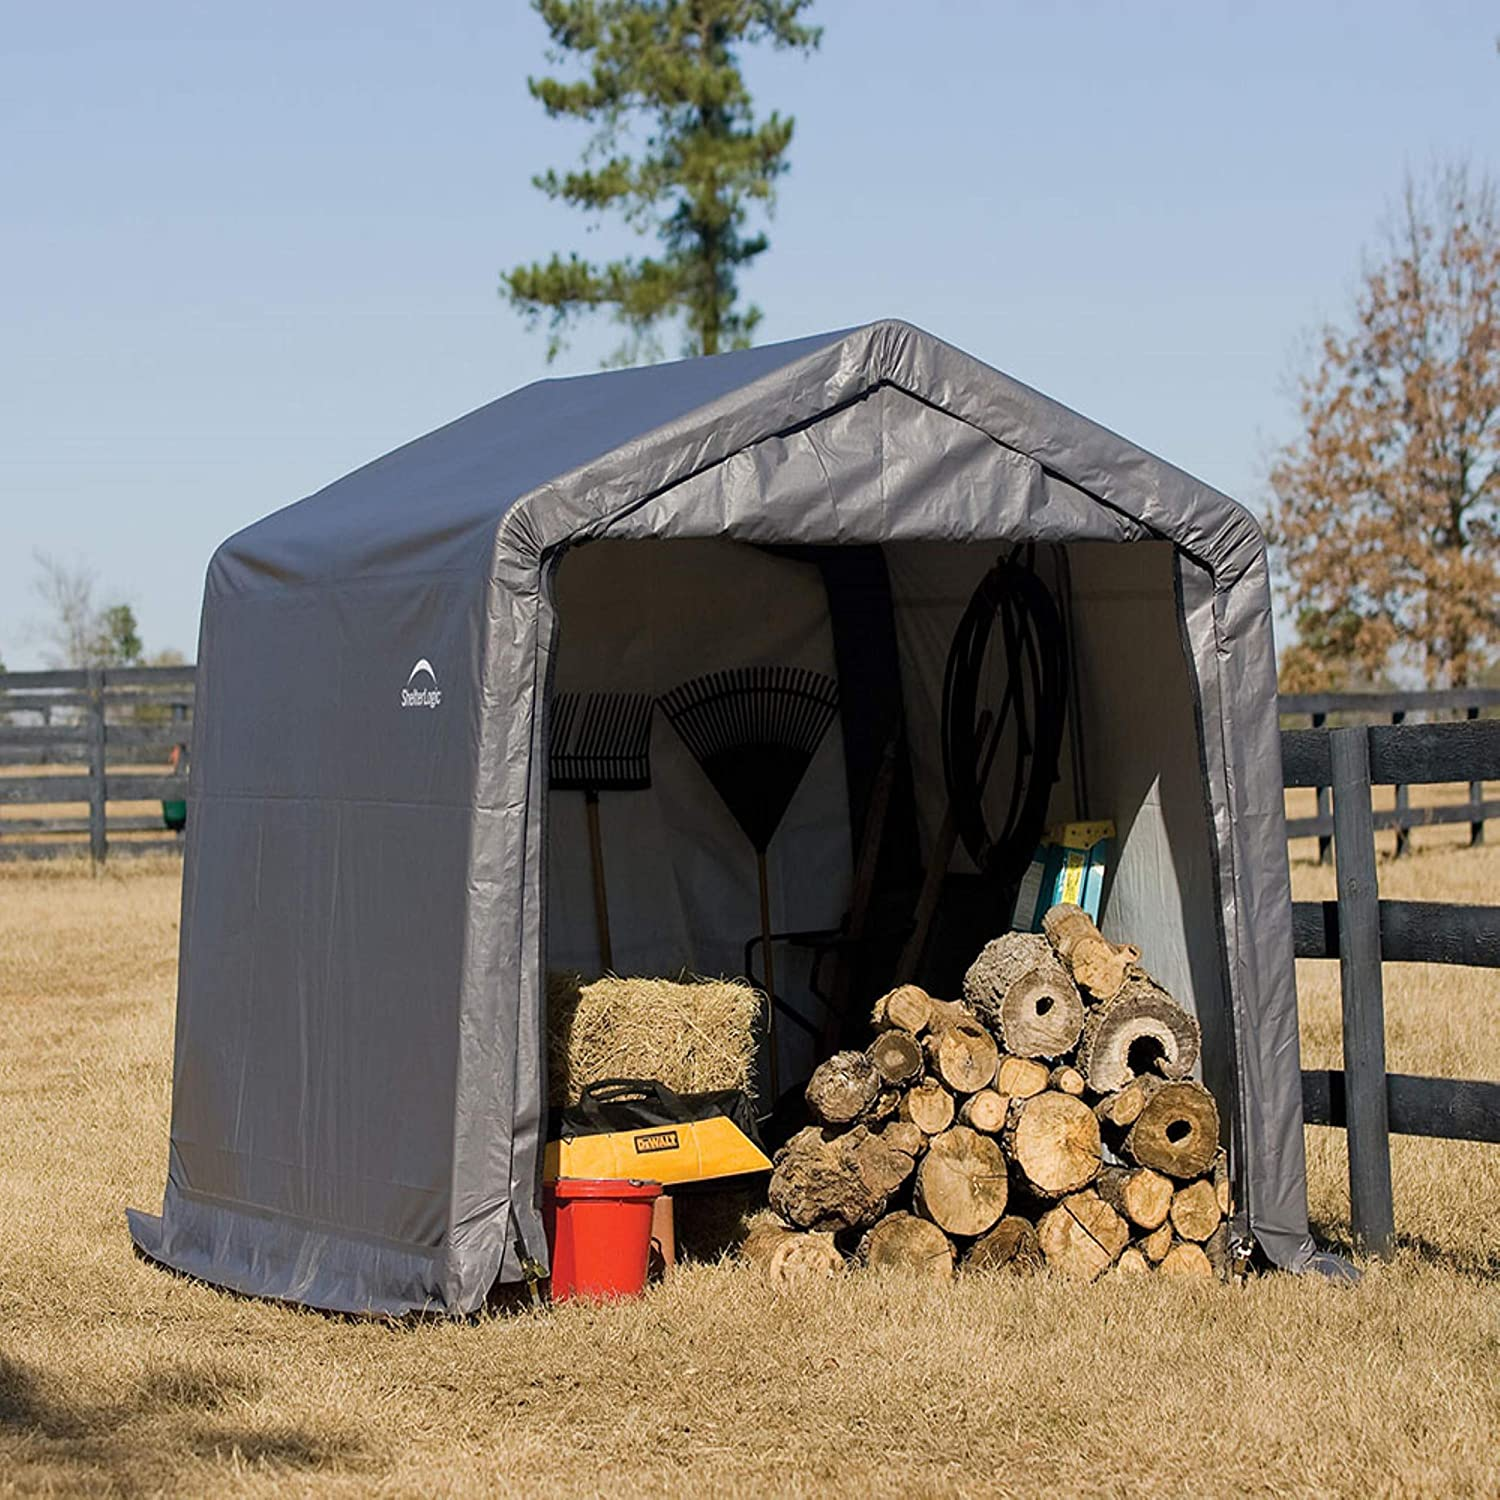 ShelterLogic Shed-in-a-Box Motorcycle Tent